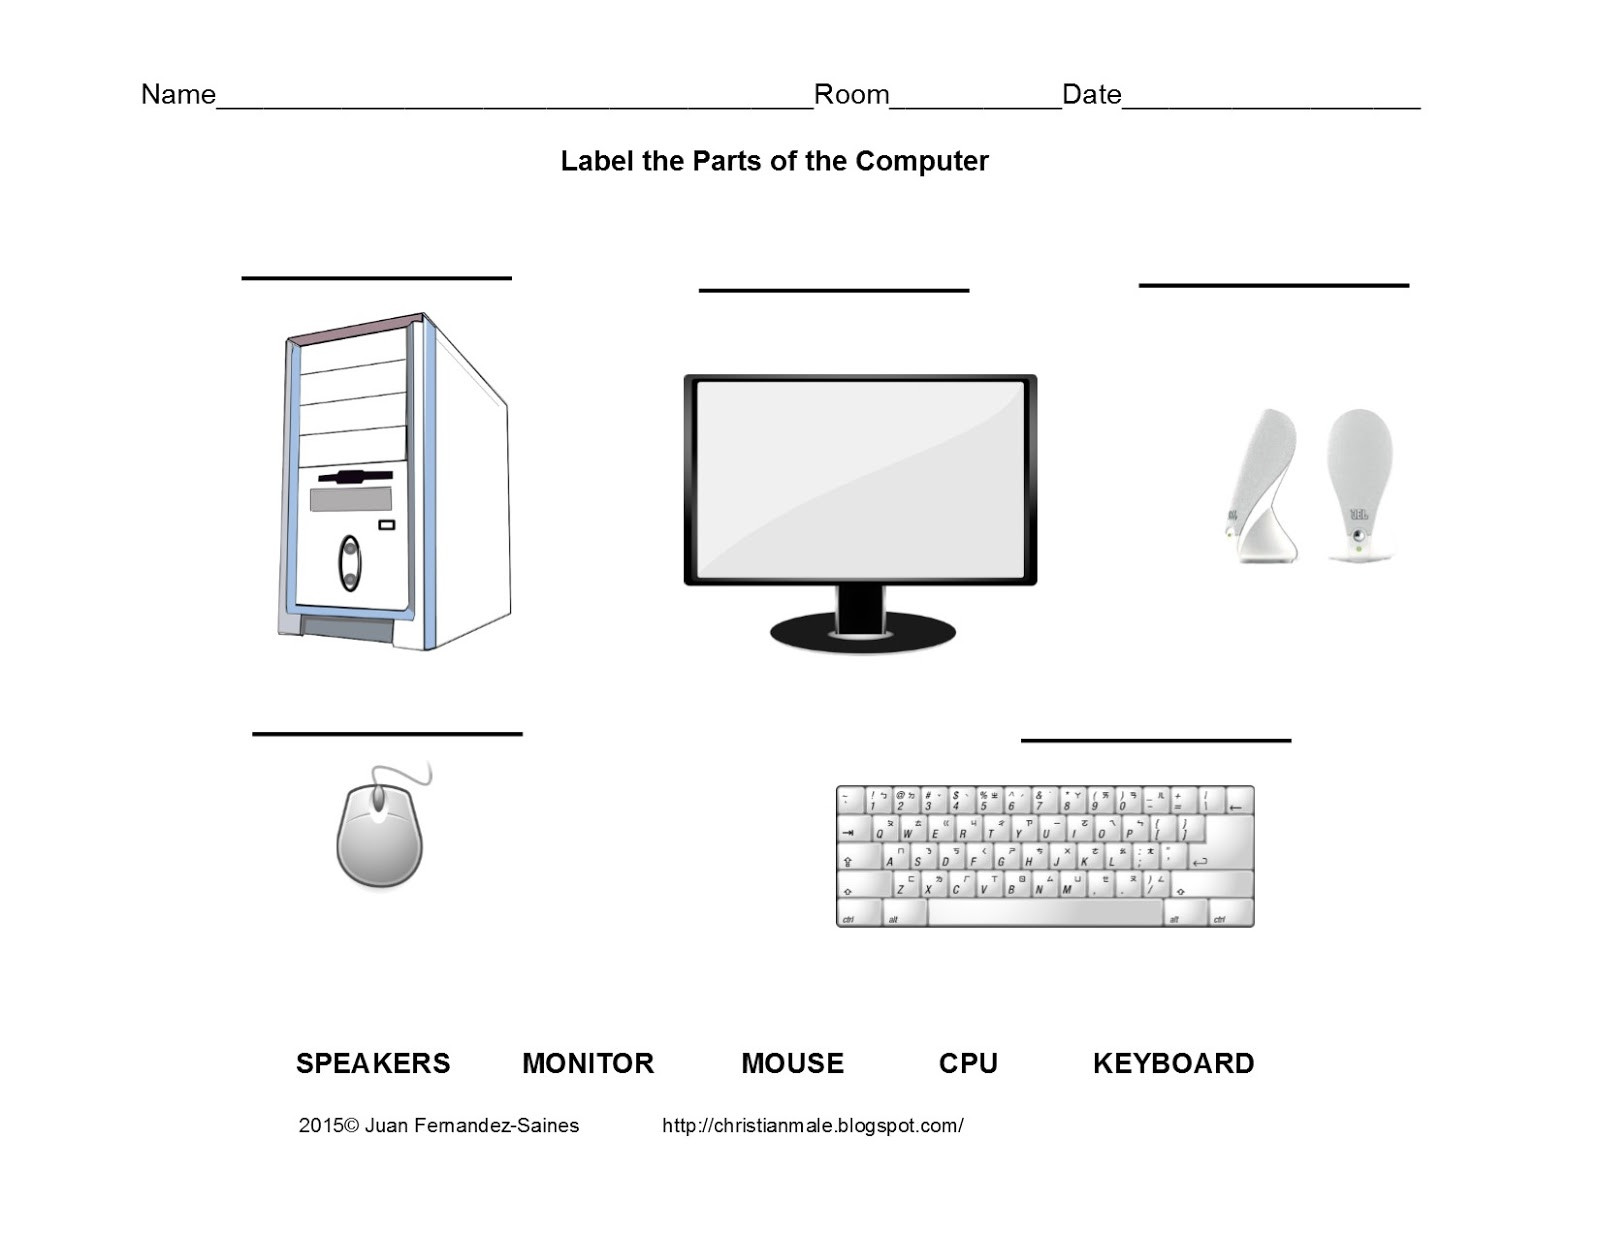 Free Printable Computer Keyboarding Worksheets Parts the Puter Worksheet